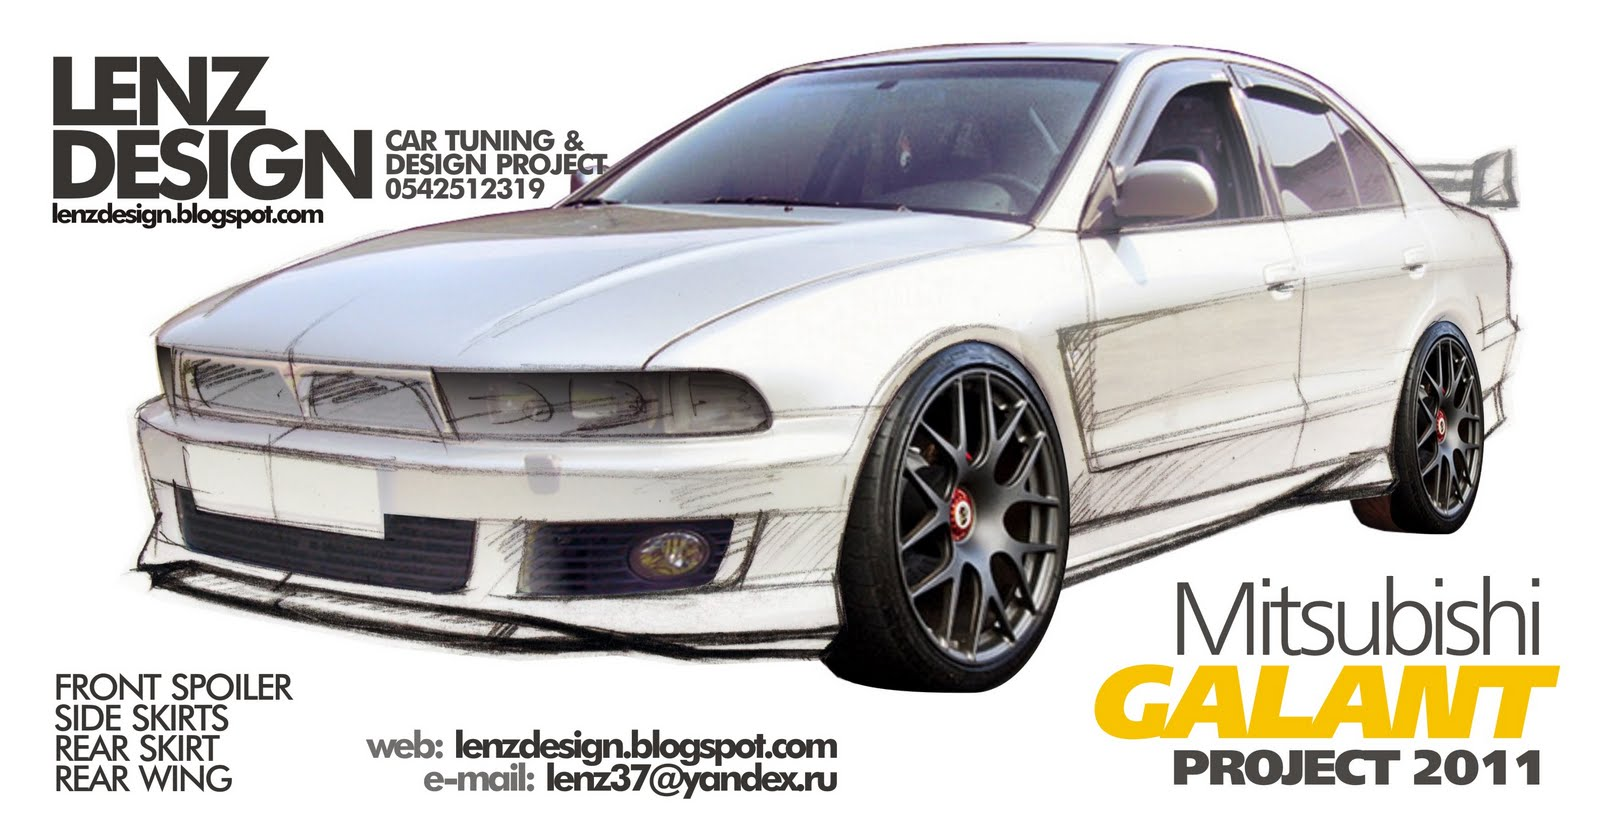 mitsubishi galant 8 tuning body kit in progress. Black Bedroom Furniture Sets. Home Design Ideas